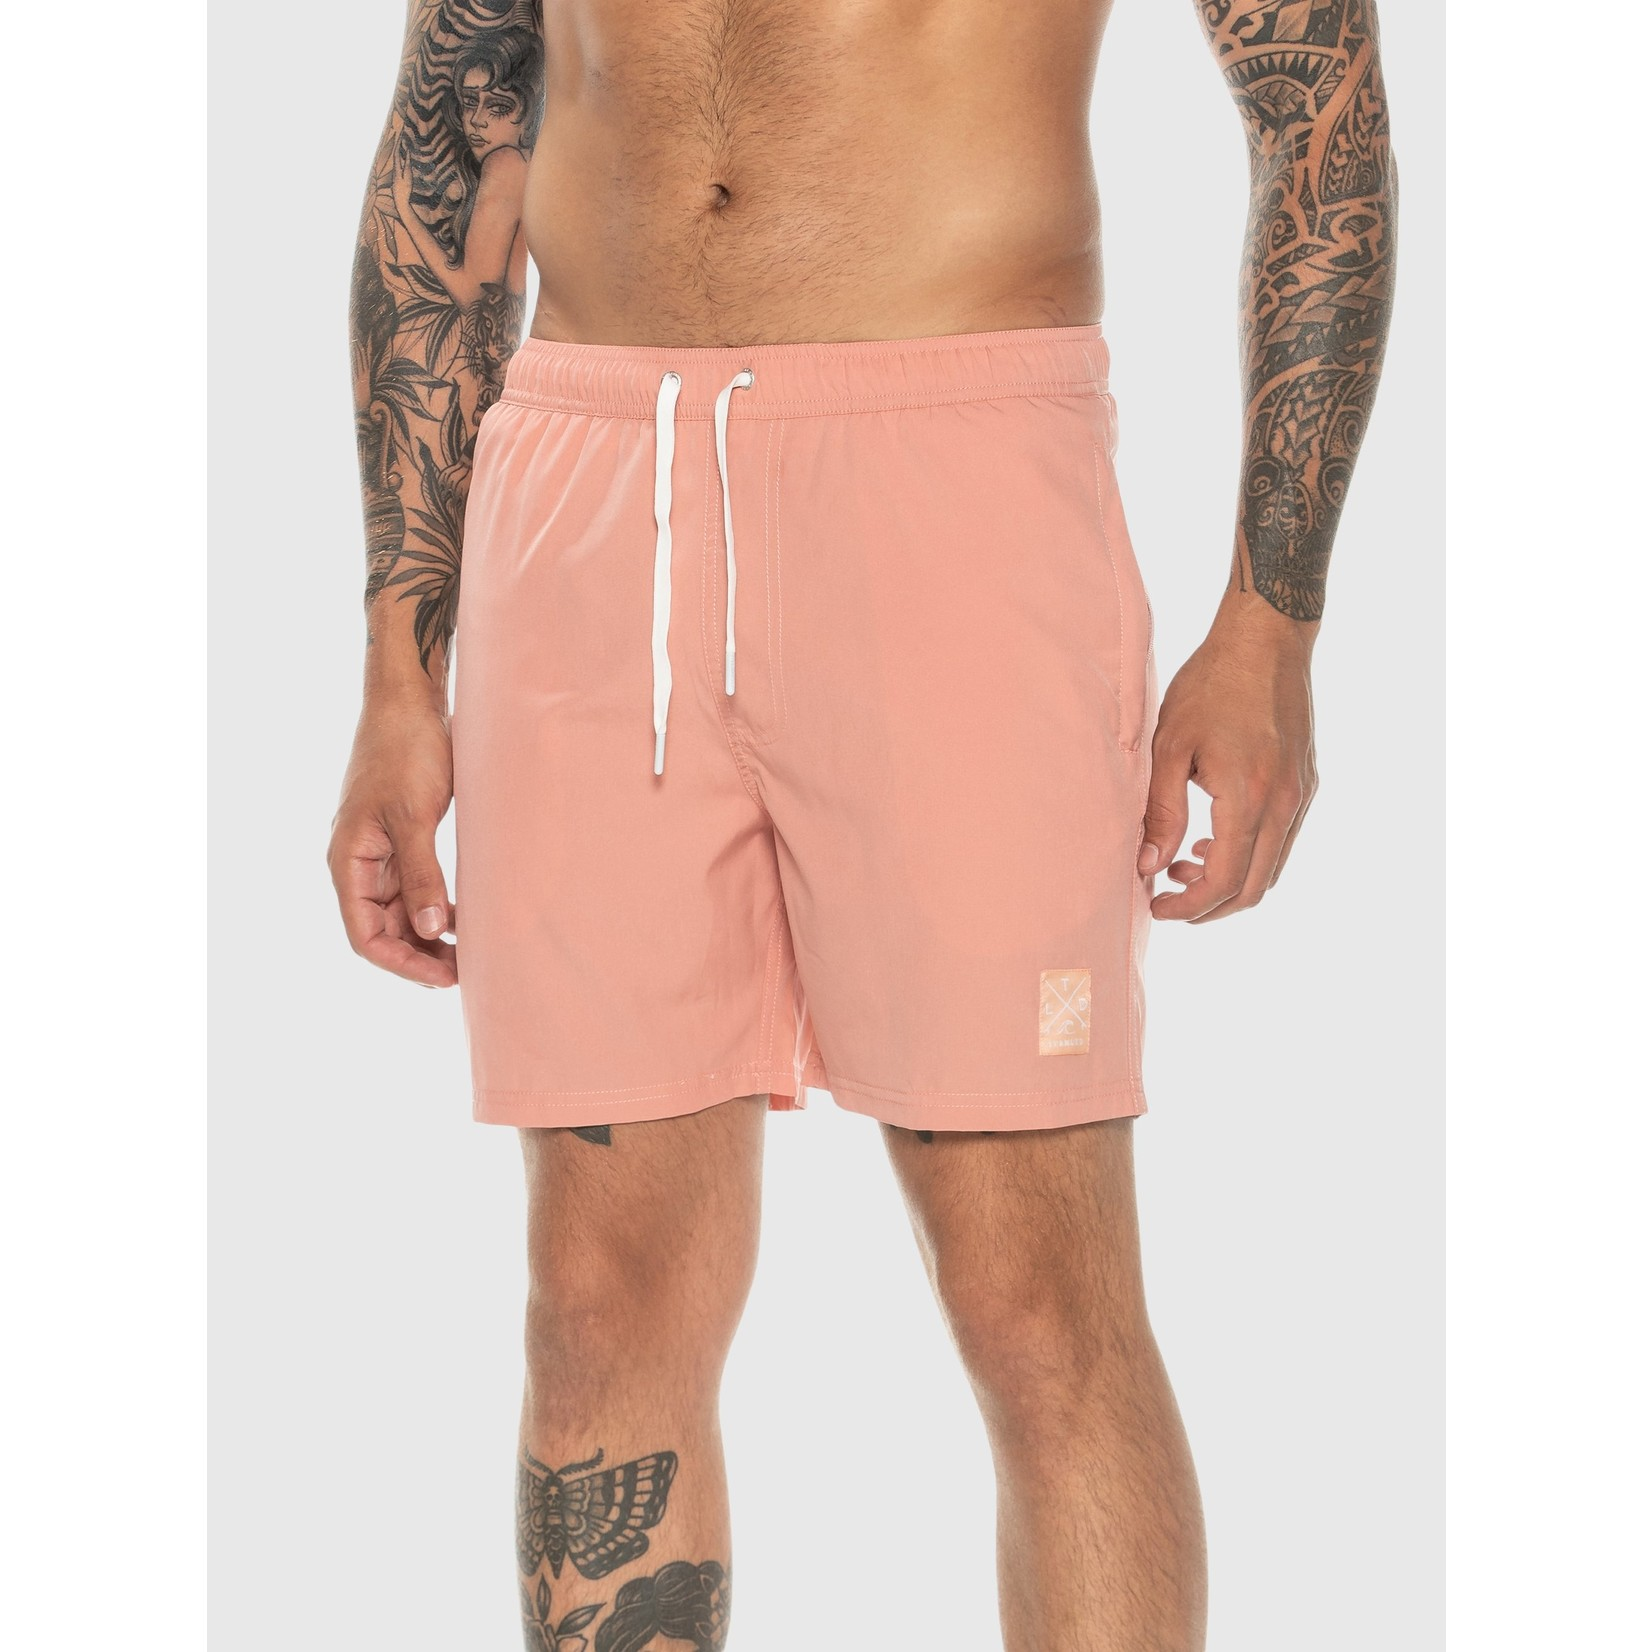 TEAMLTD SALMON SWIM SHORTS